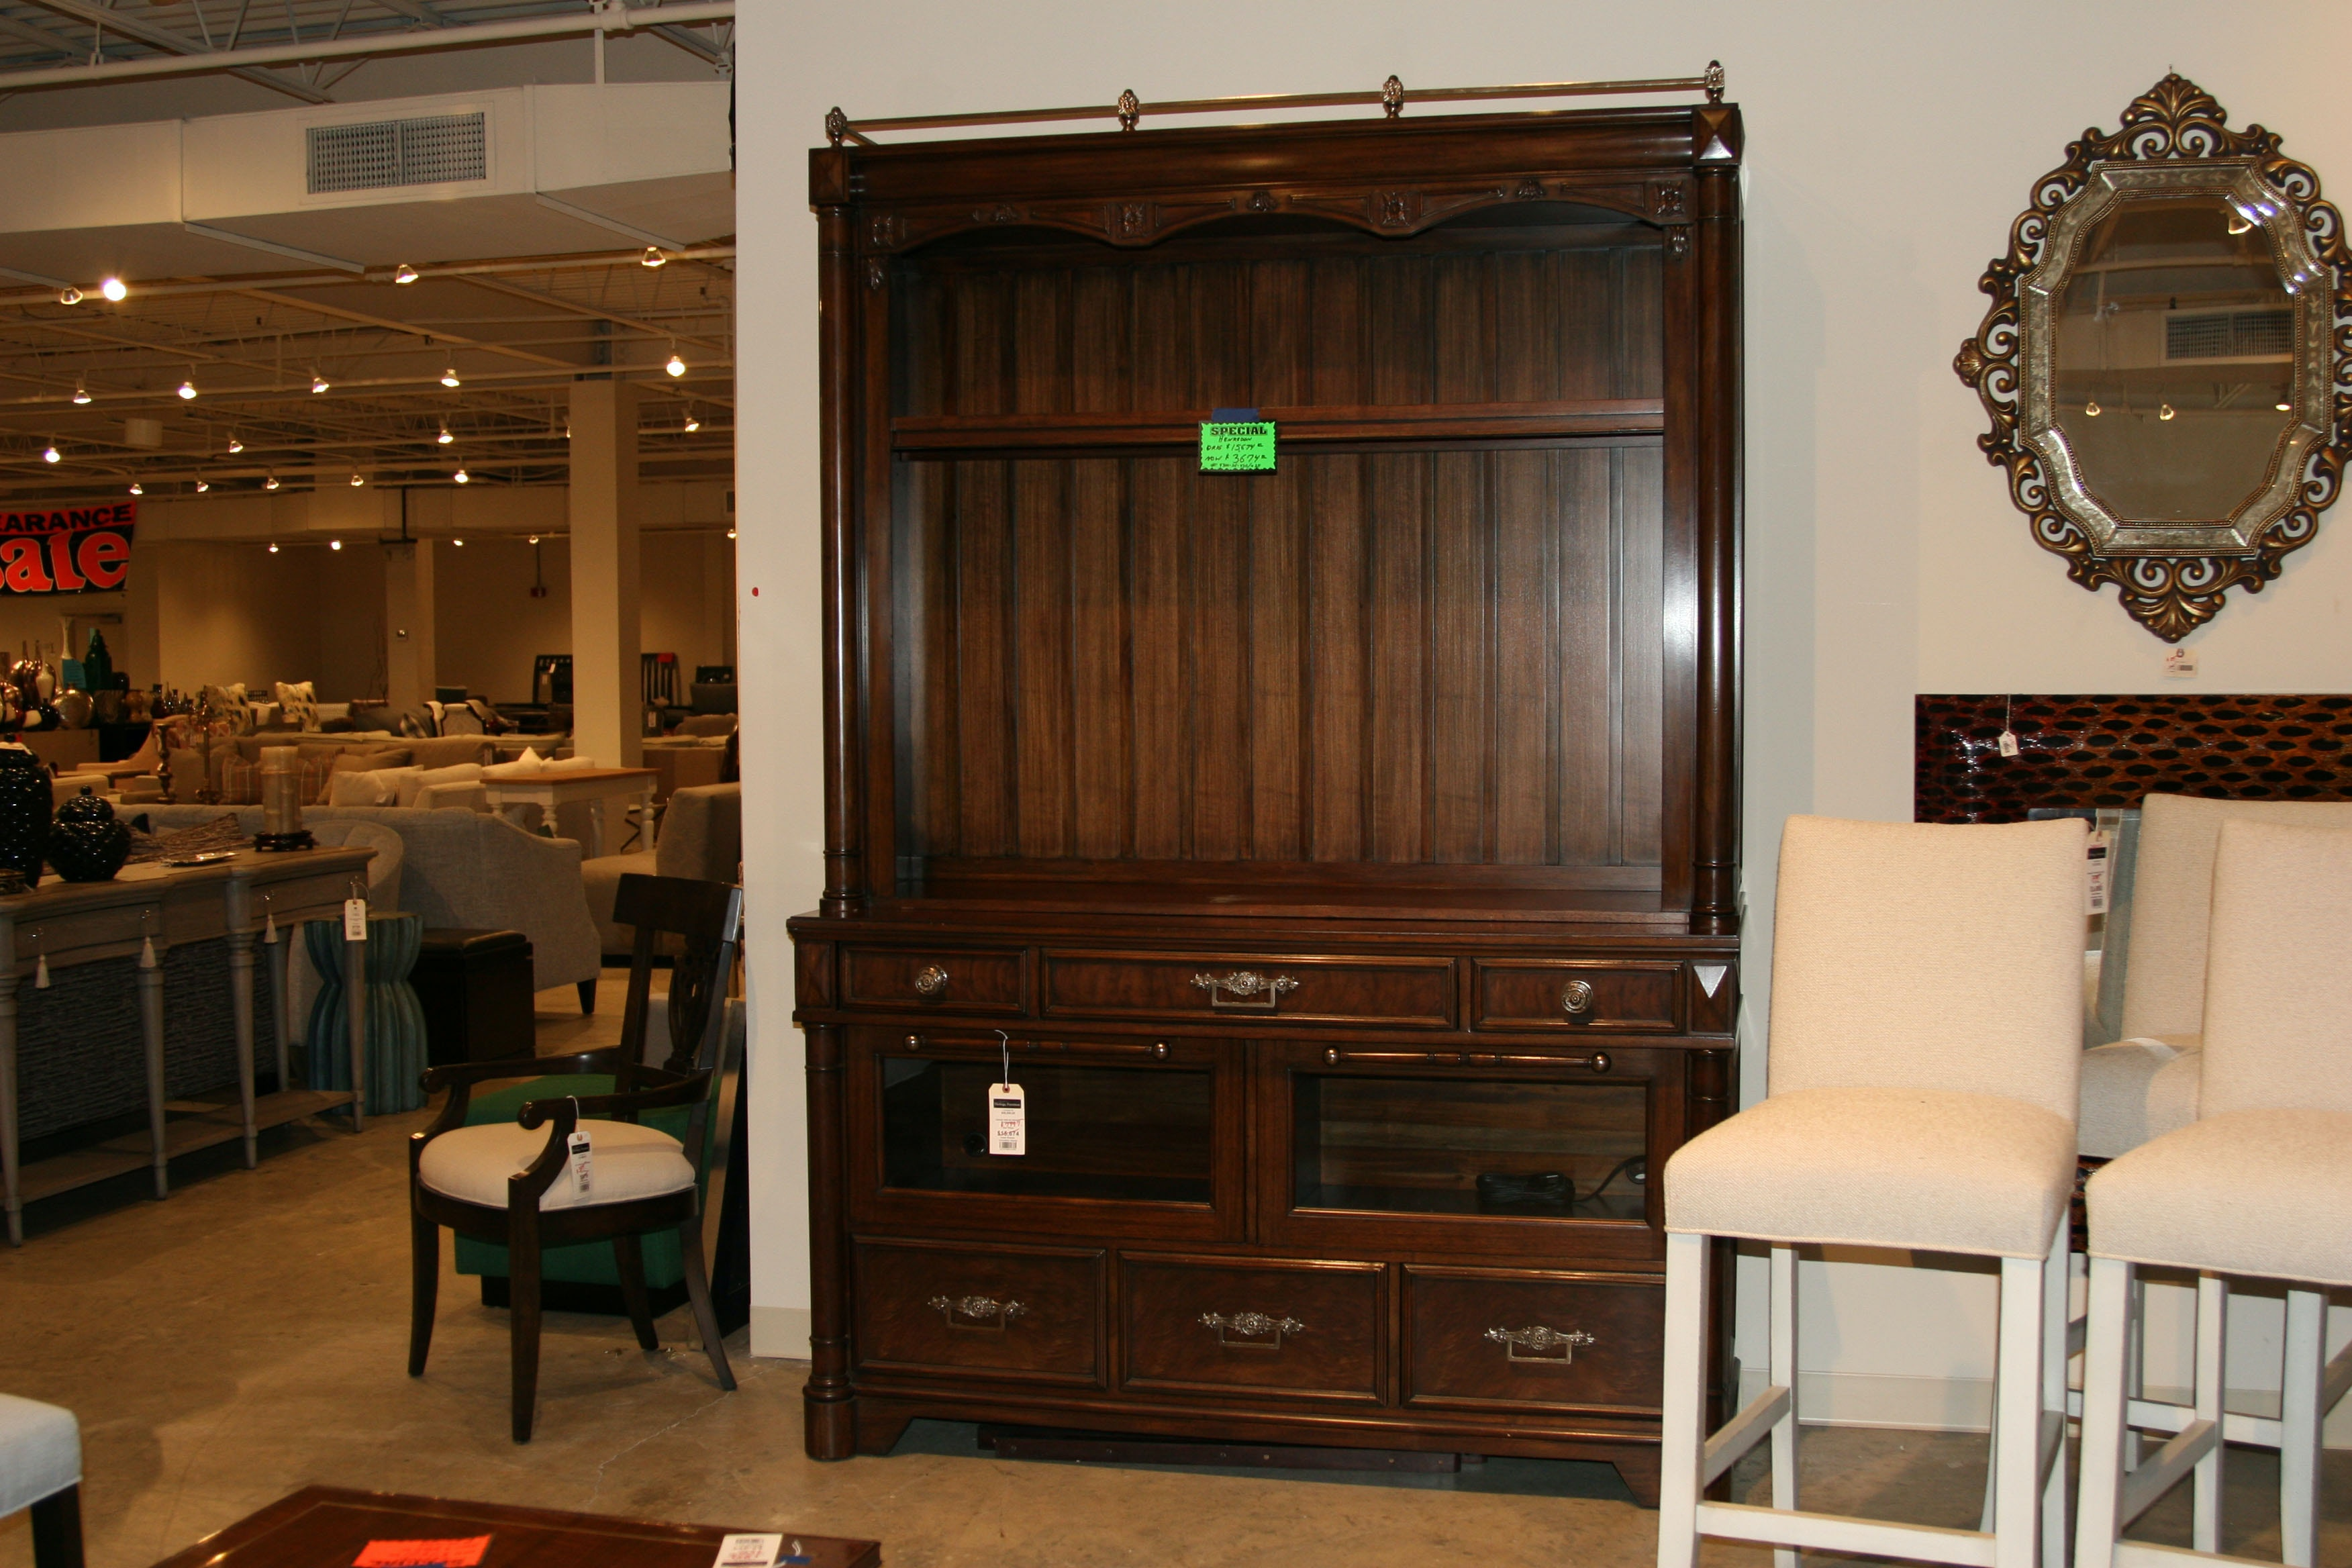 Genial Heritage Furniture Outlet Cabinet By Henredon Furniture 4300 26 430